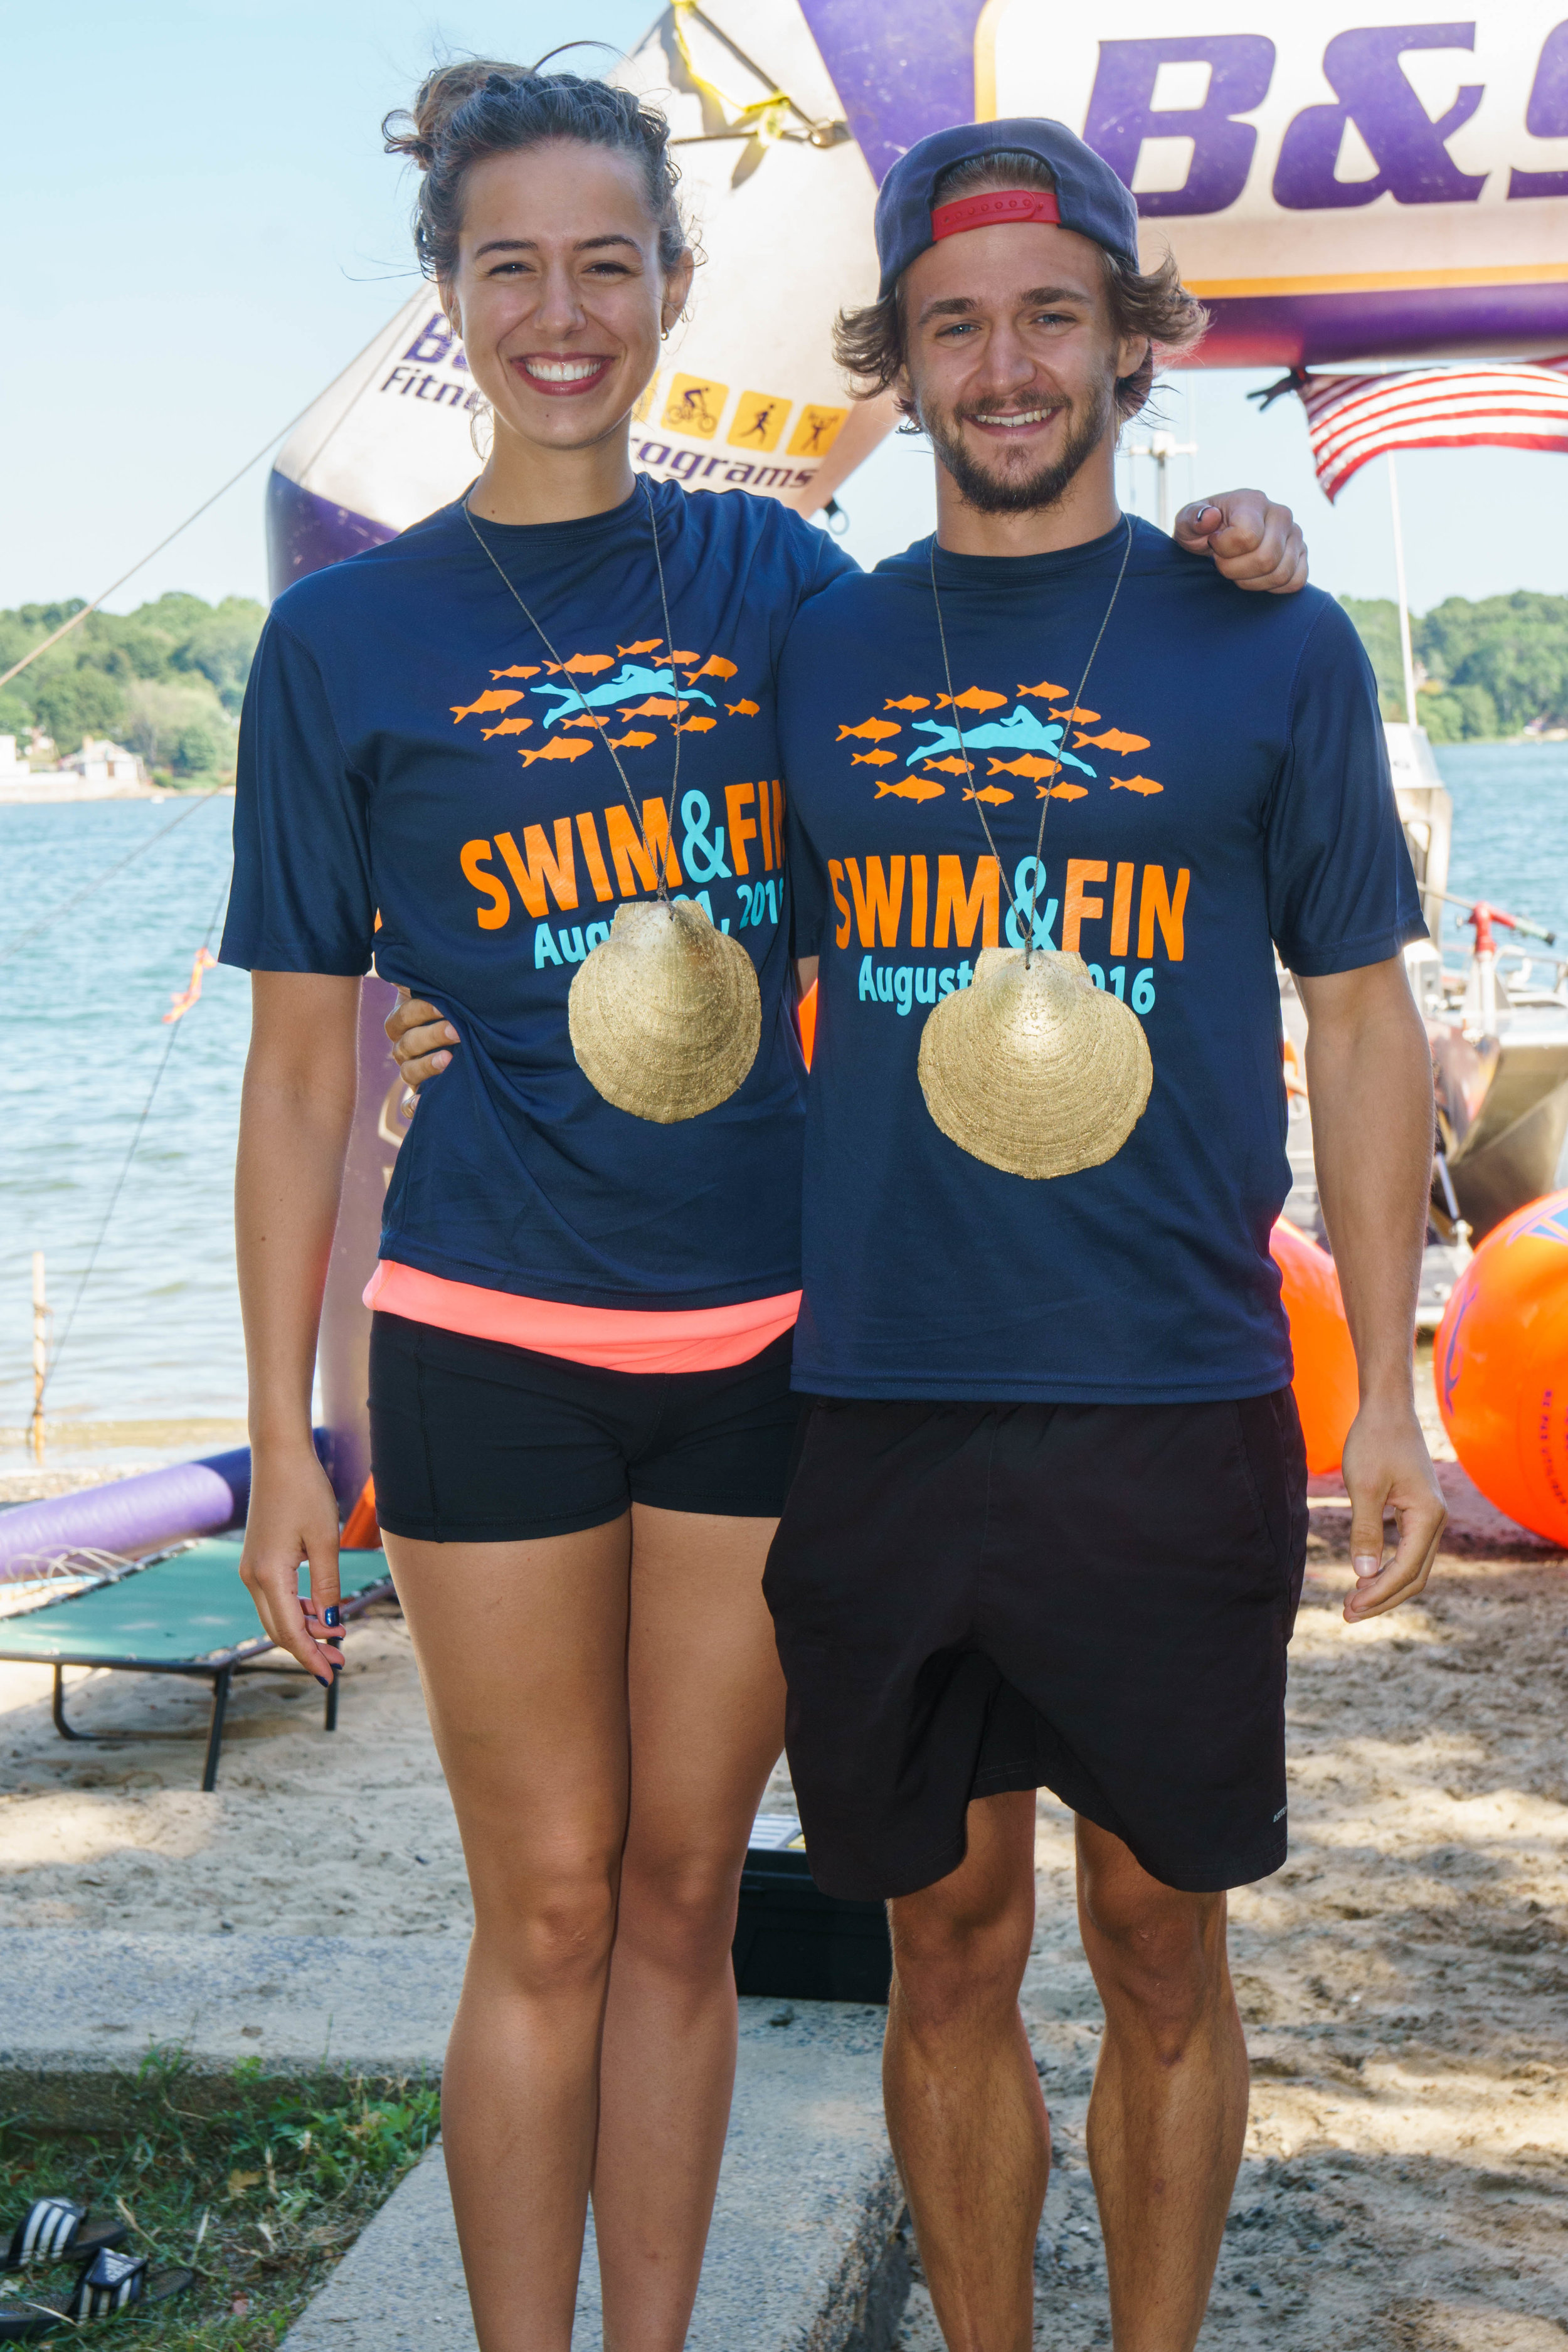 Two of last year's Swim & Fin winners